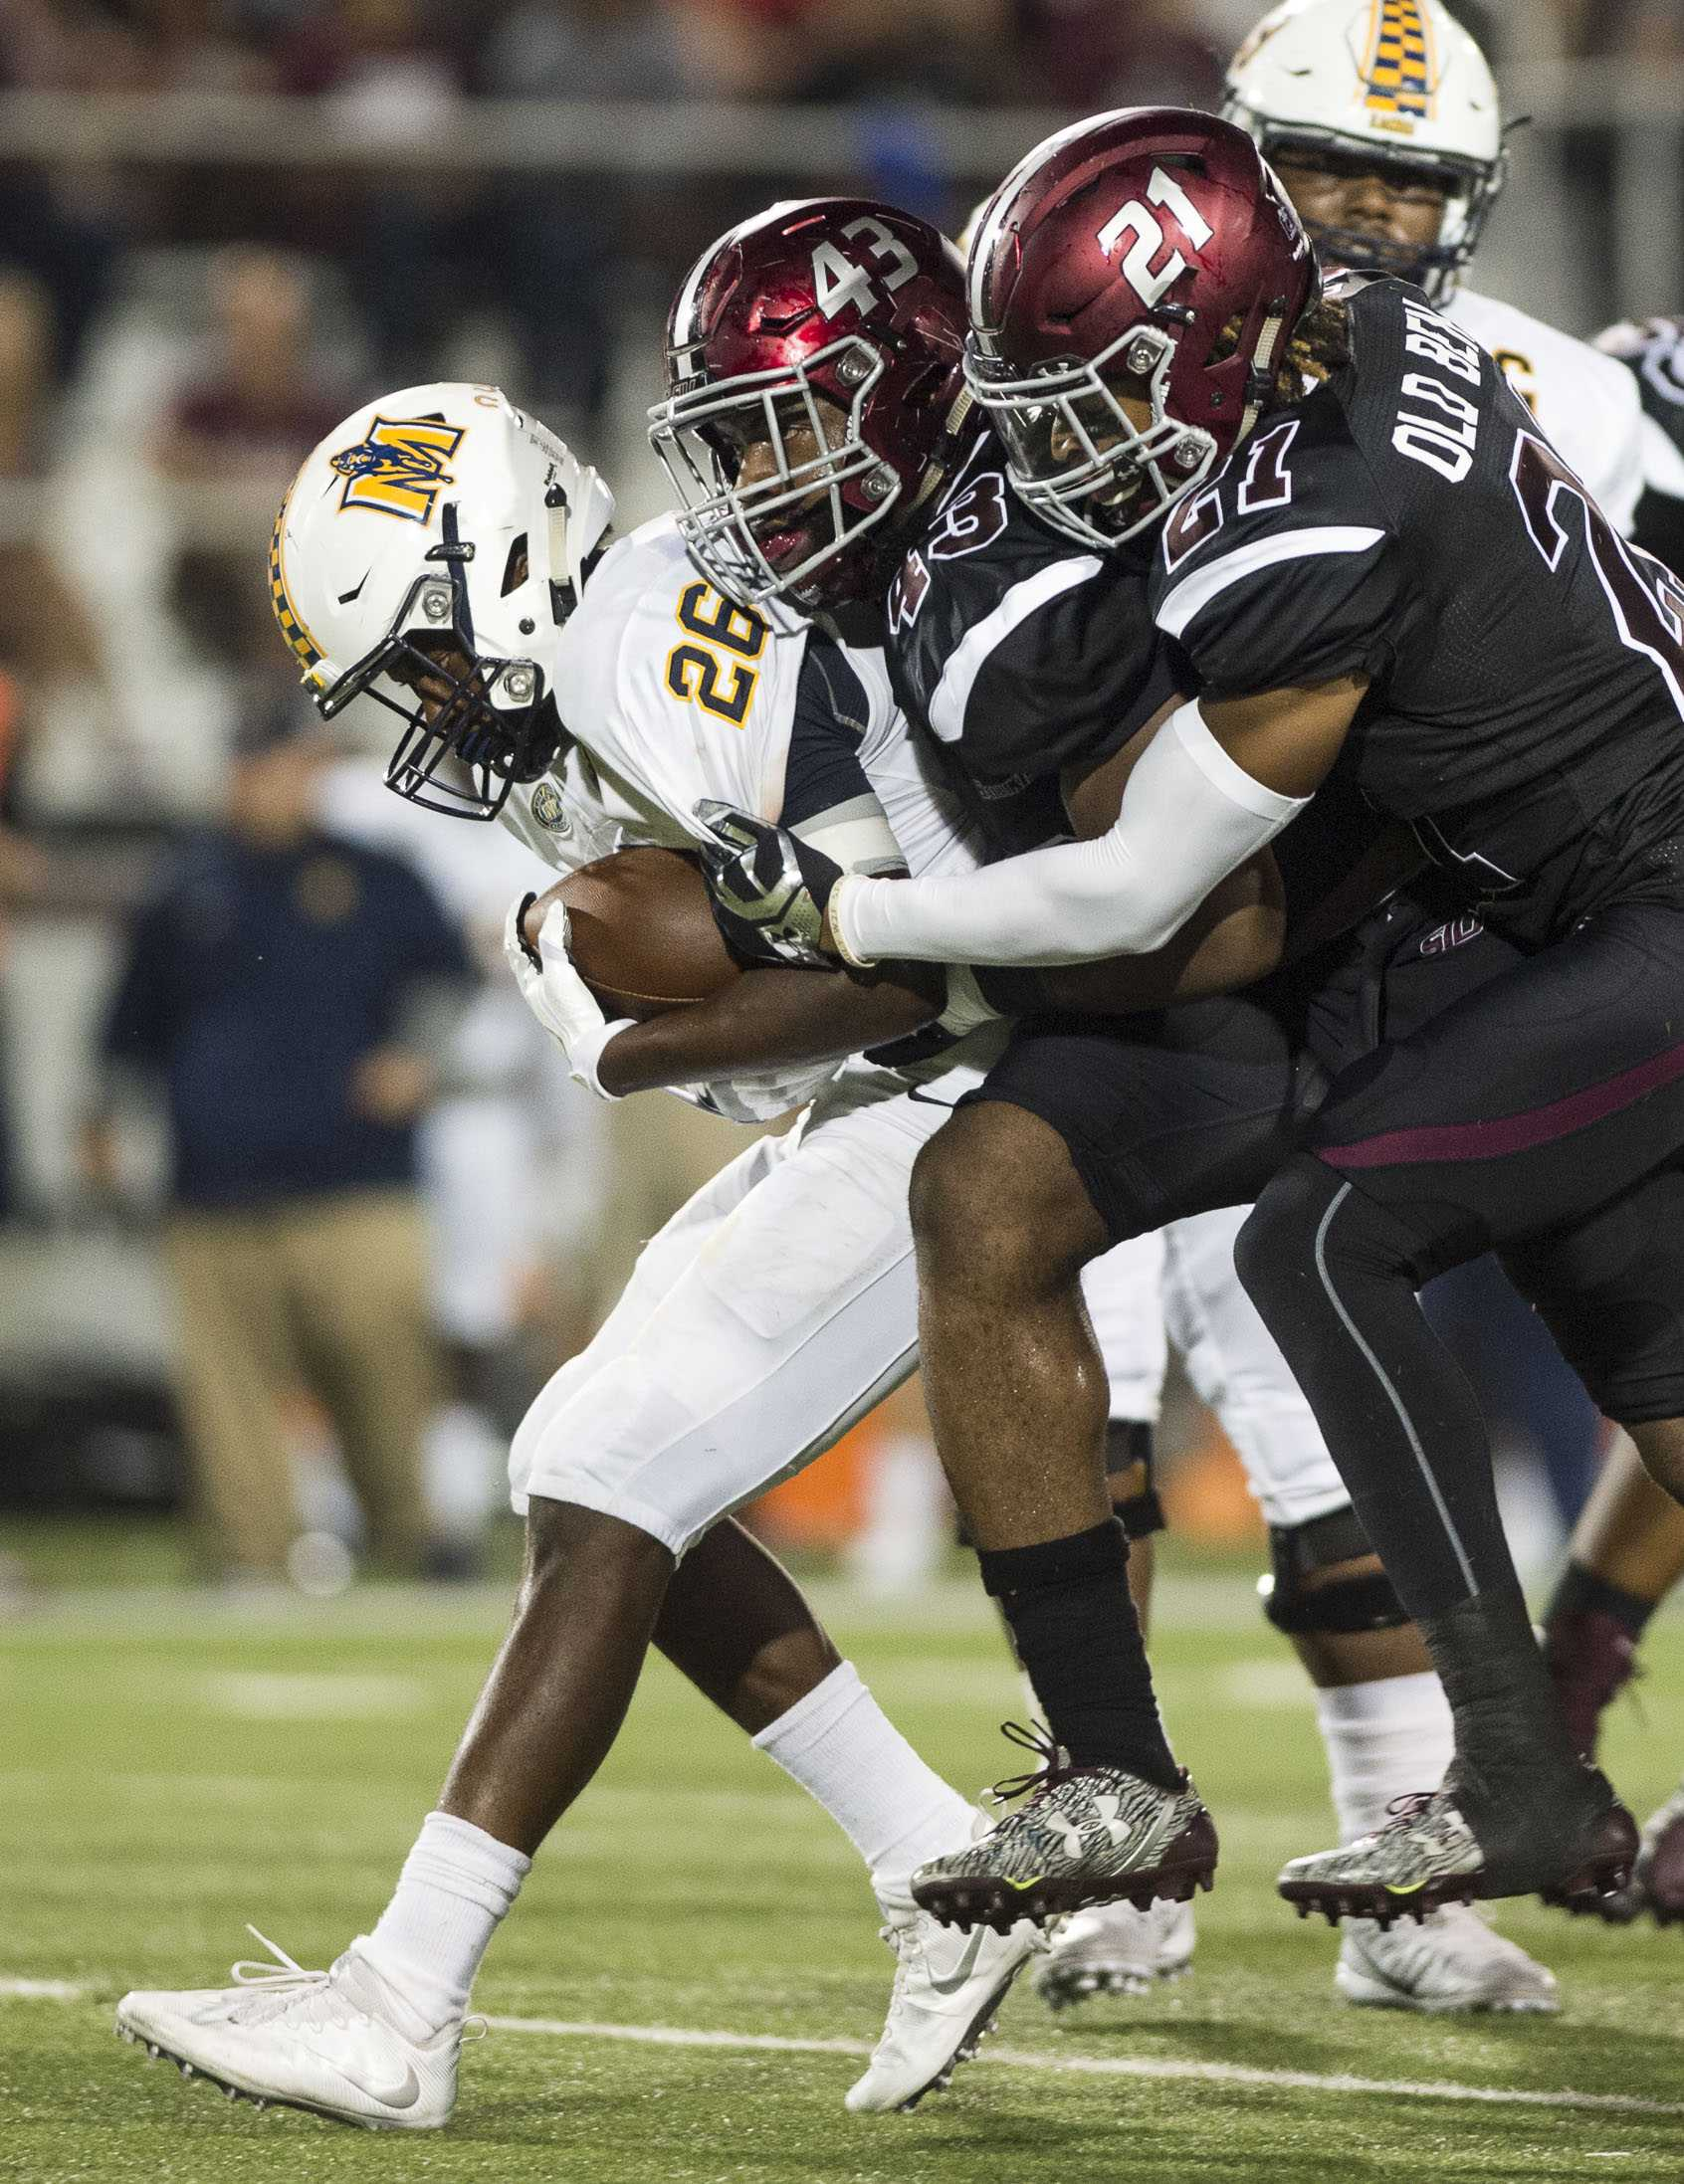 SIU senior defensive end Deondre Barnett (43) and junior safety Ryan Neal (21) work to stop Racer junior running back Demetric Johnson (26) during the Salukis' 50-17 win over the Murray State on Saturday, Sept. 17, 2016, at Saluki Stadium. (Ryan Michalesko | @photosbylesko)